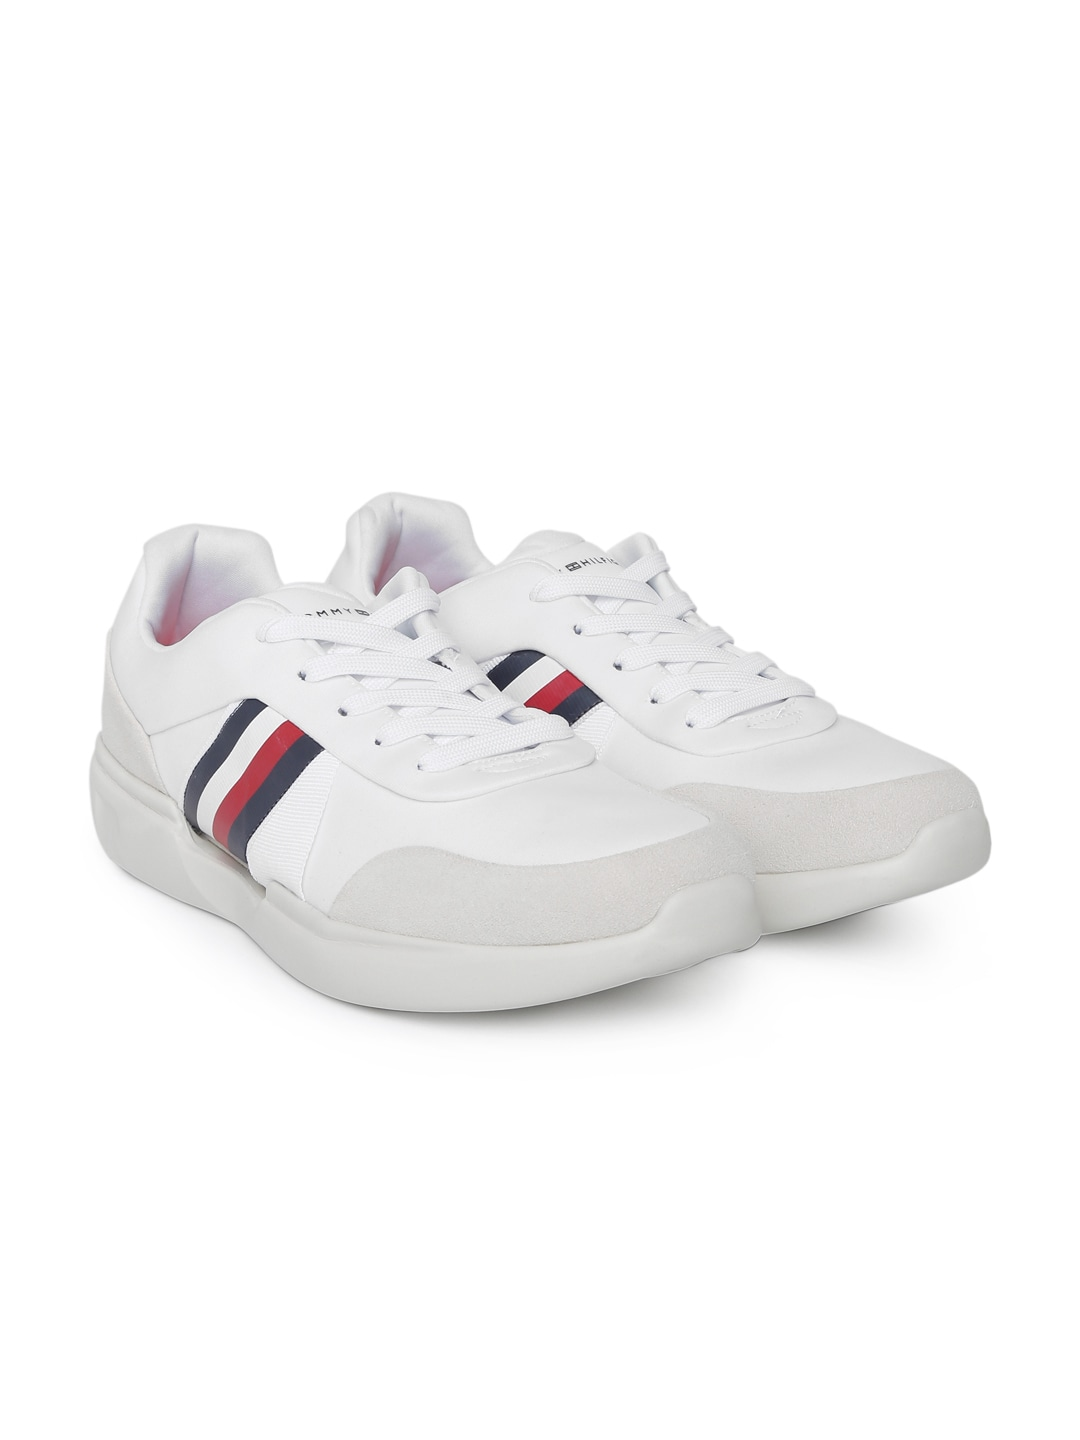 8d4a31c27282 Tommy Hilfiger Shoes - Buy Tommy Hilfiger Shoes Online - Myntra